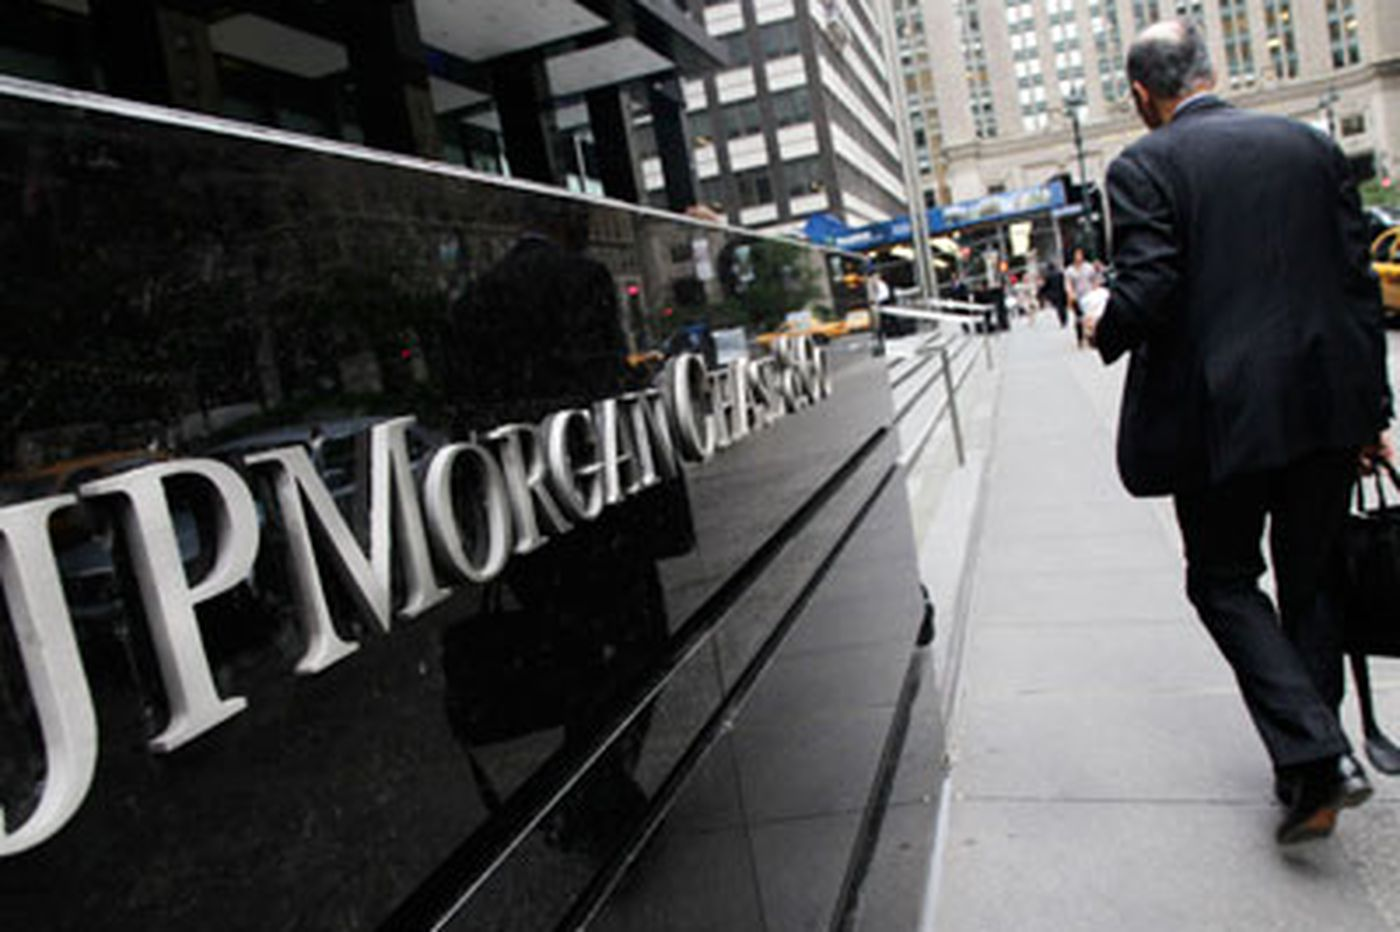 JPMorgan's big loss: Was it hedging or betting?